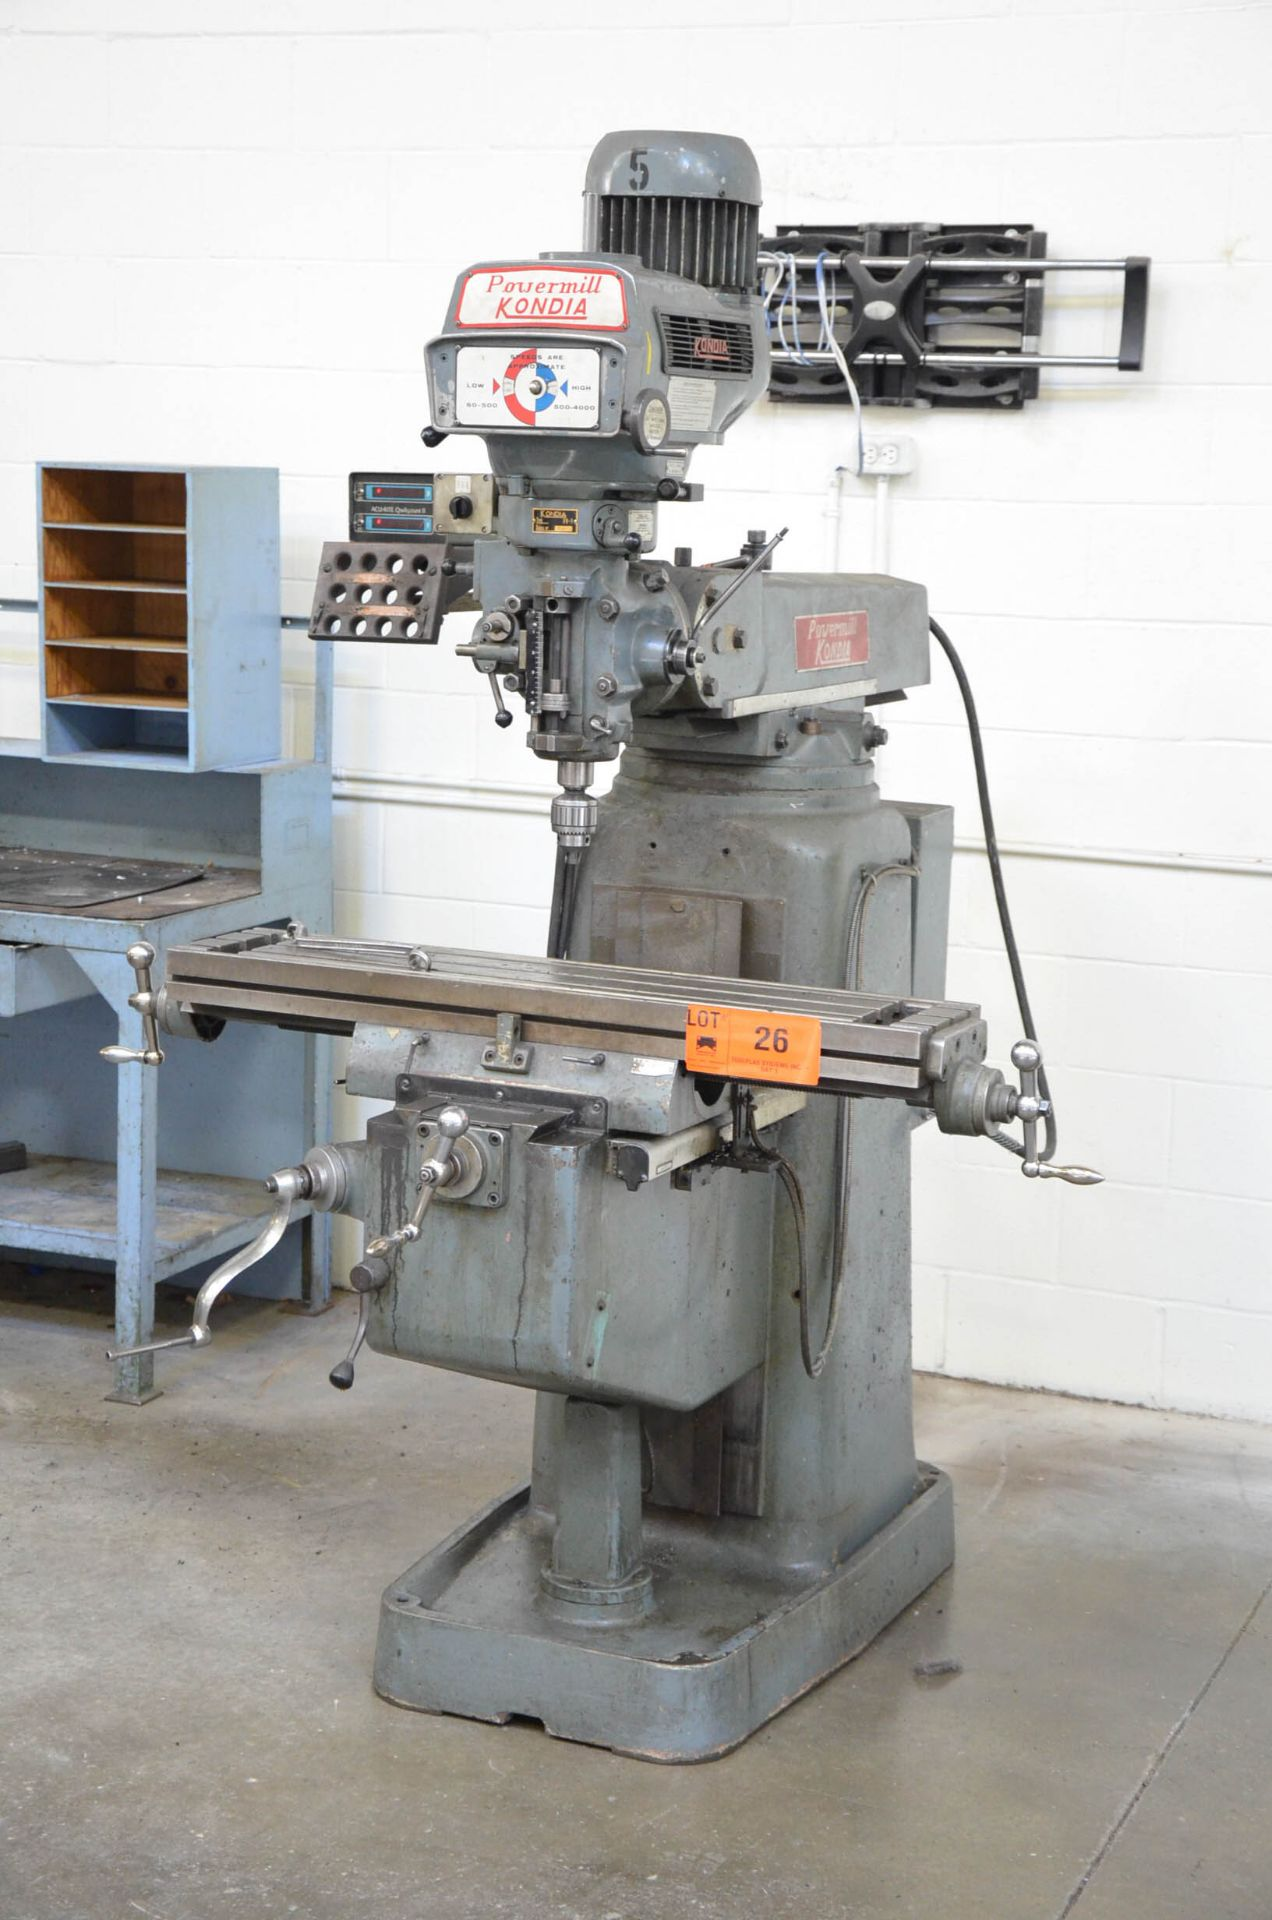 """KONDIA POWERMILL TYPE FV-1 VERTICAL TURRET MILLING MACHINE WITH 9""""X42"""" TABLE, SPEEDS TO 4,000RPM, - Image 2 of 6"""